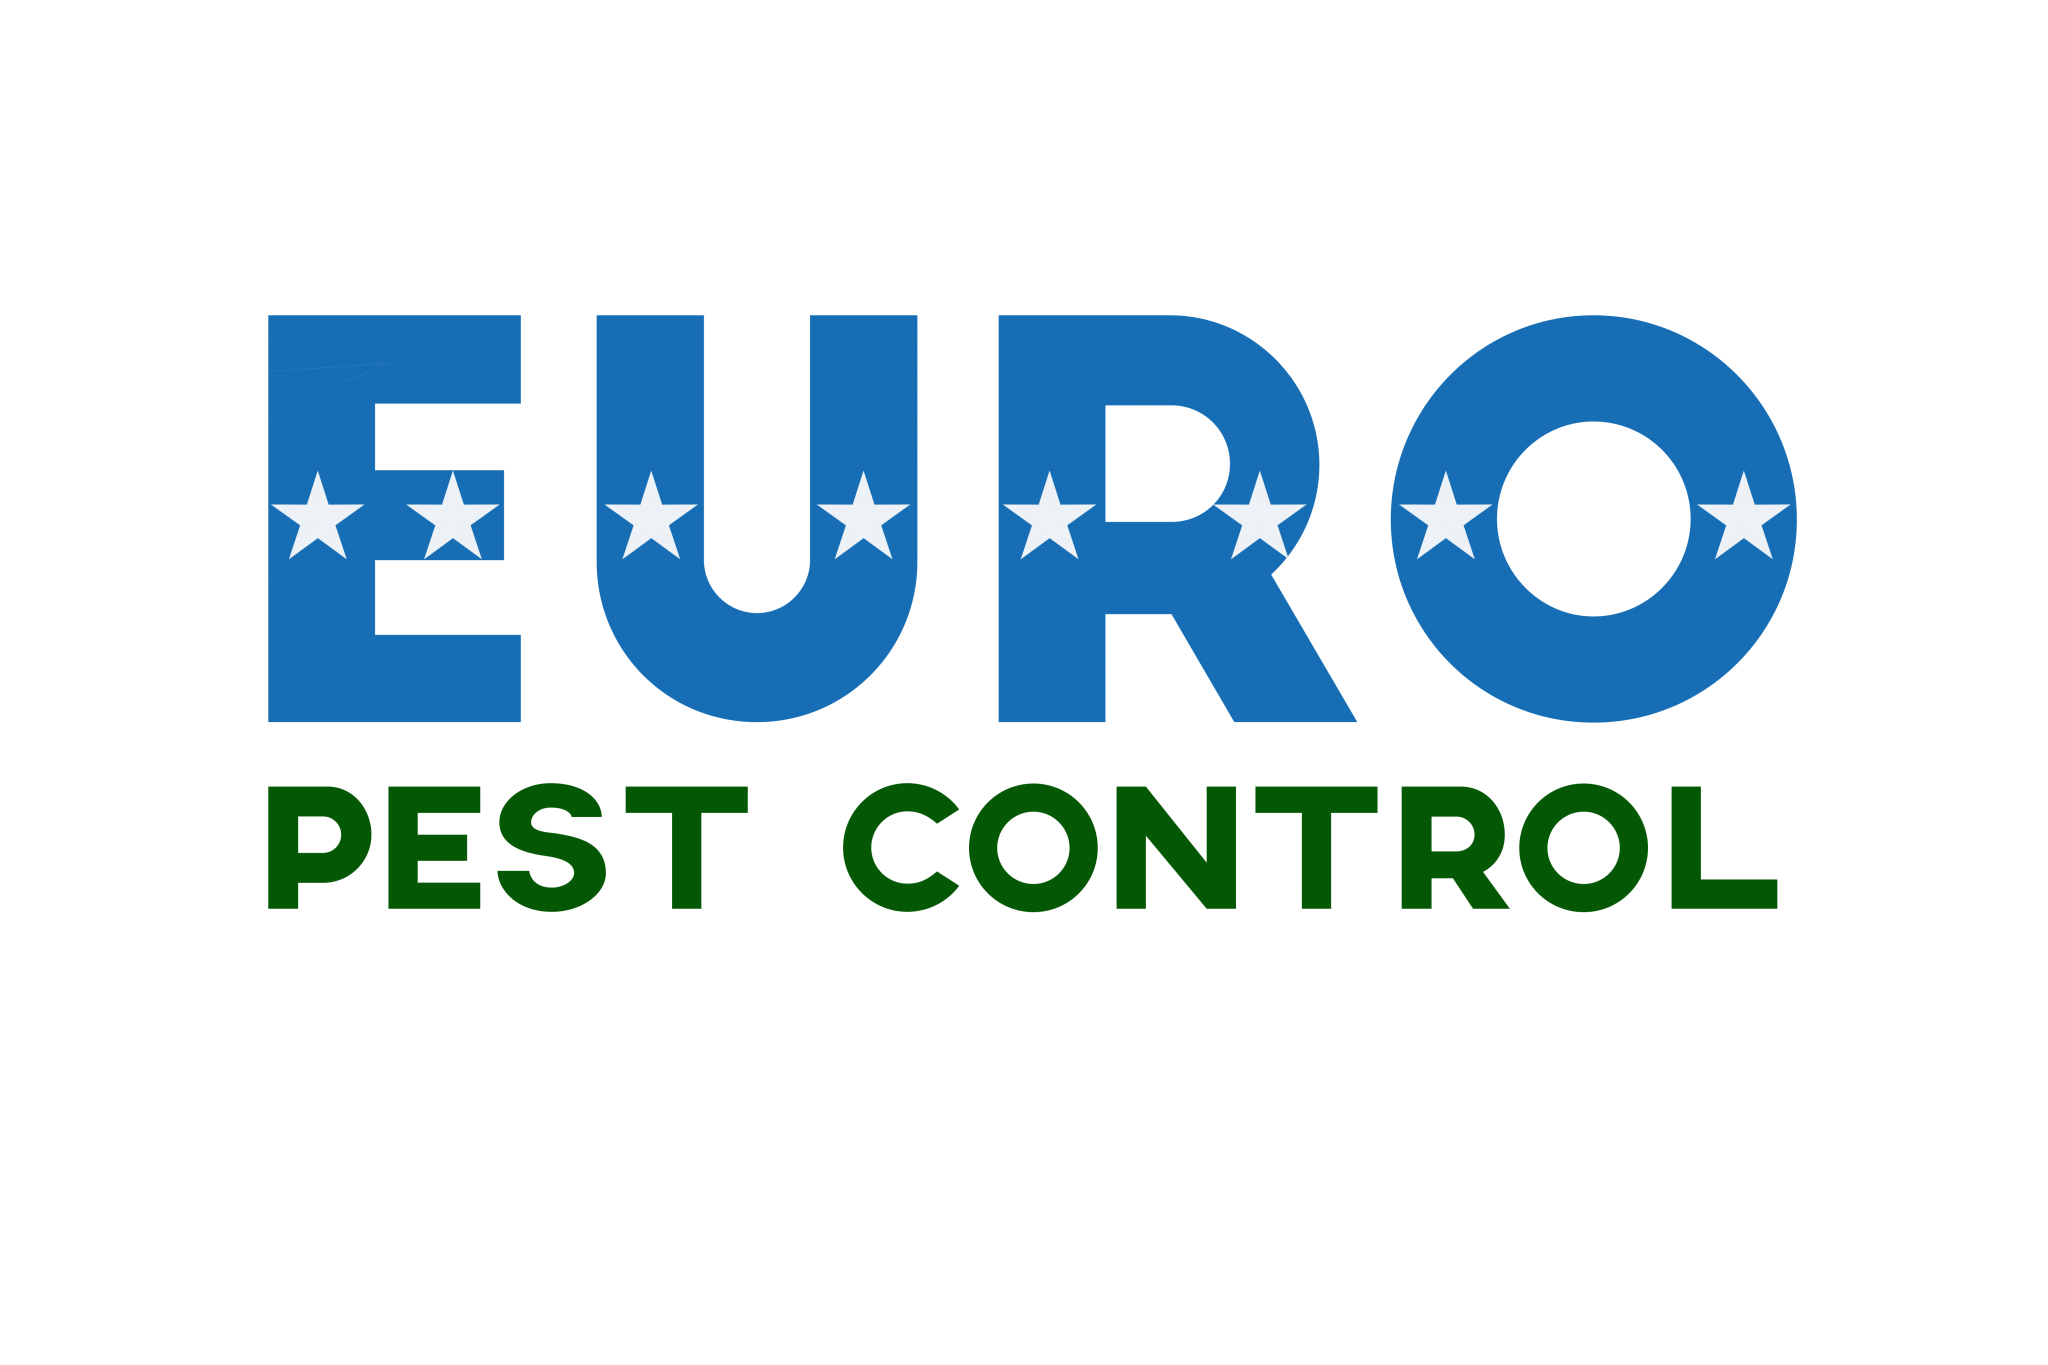 EUROPESTCONTROL FUMIGATION CO., LTD